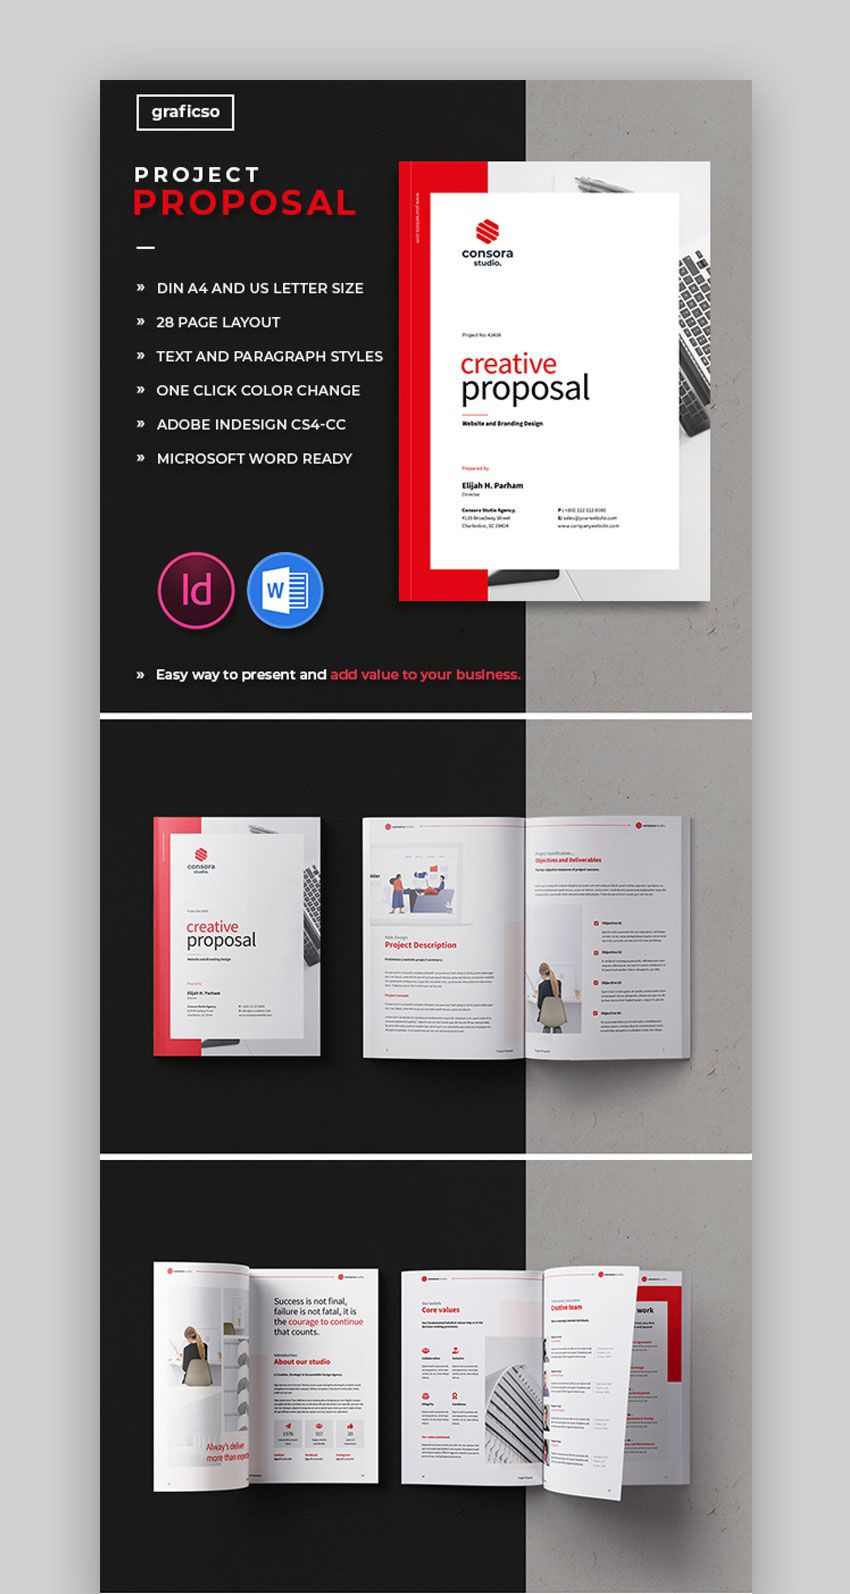 007 Simple Graphic Design Proposal Template Doc Free Concept Full